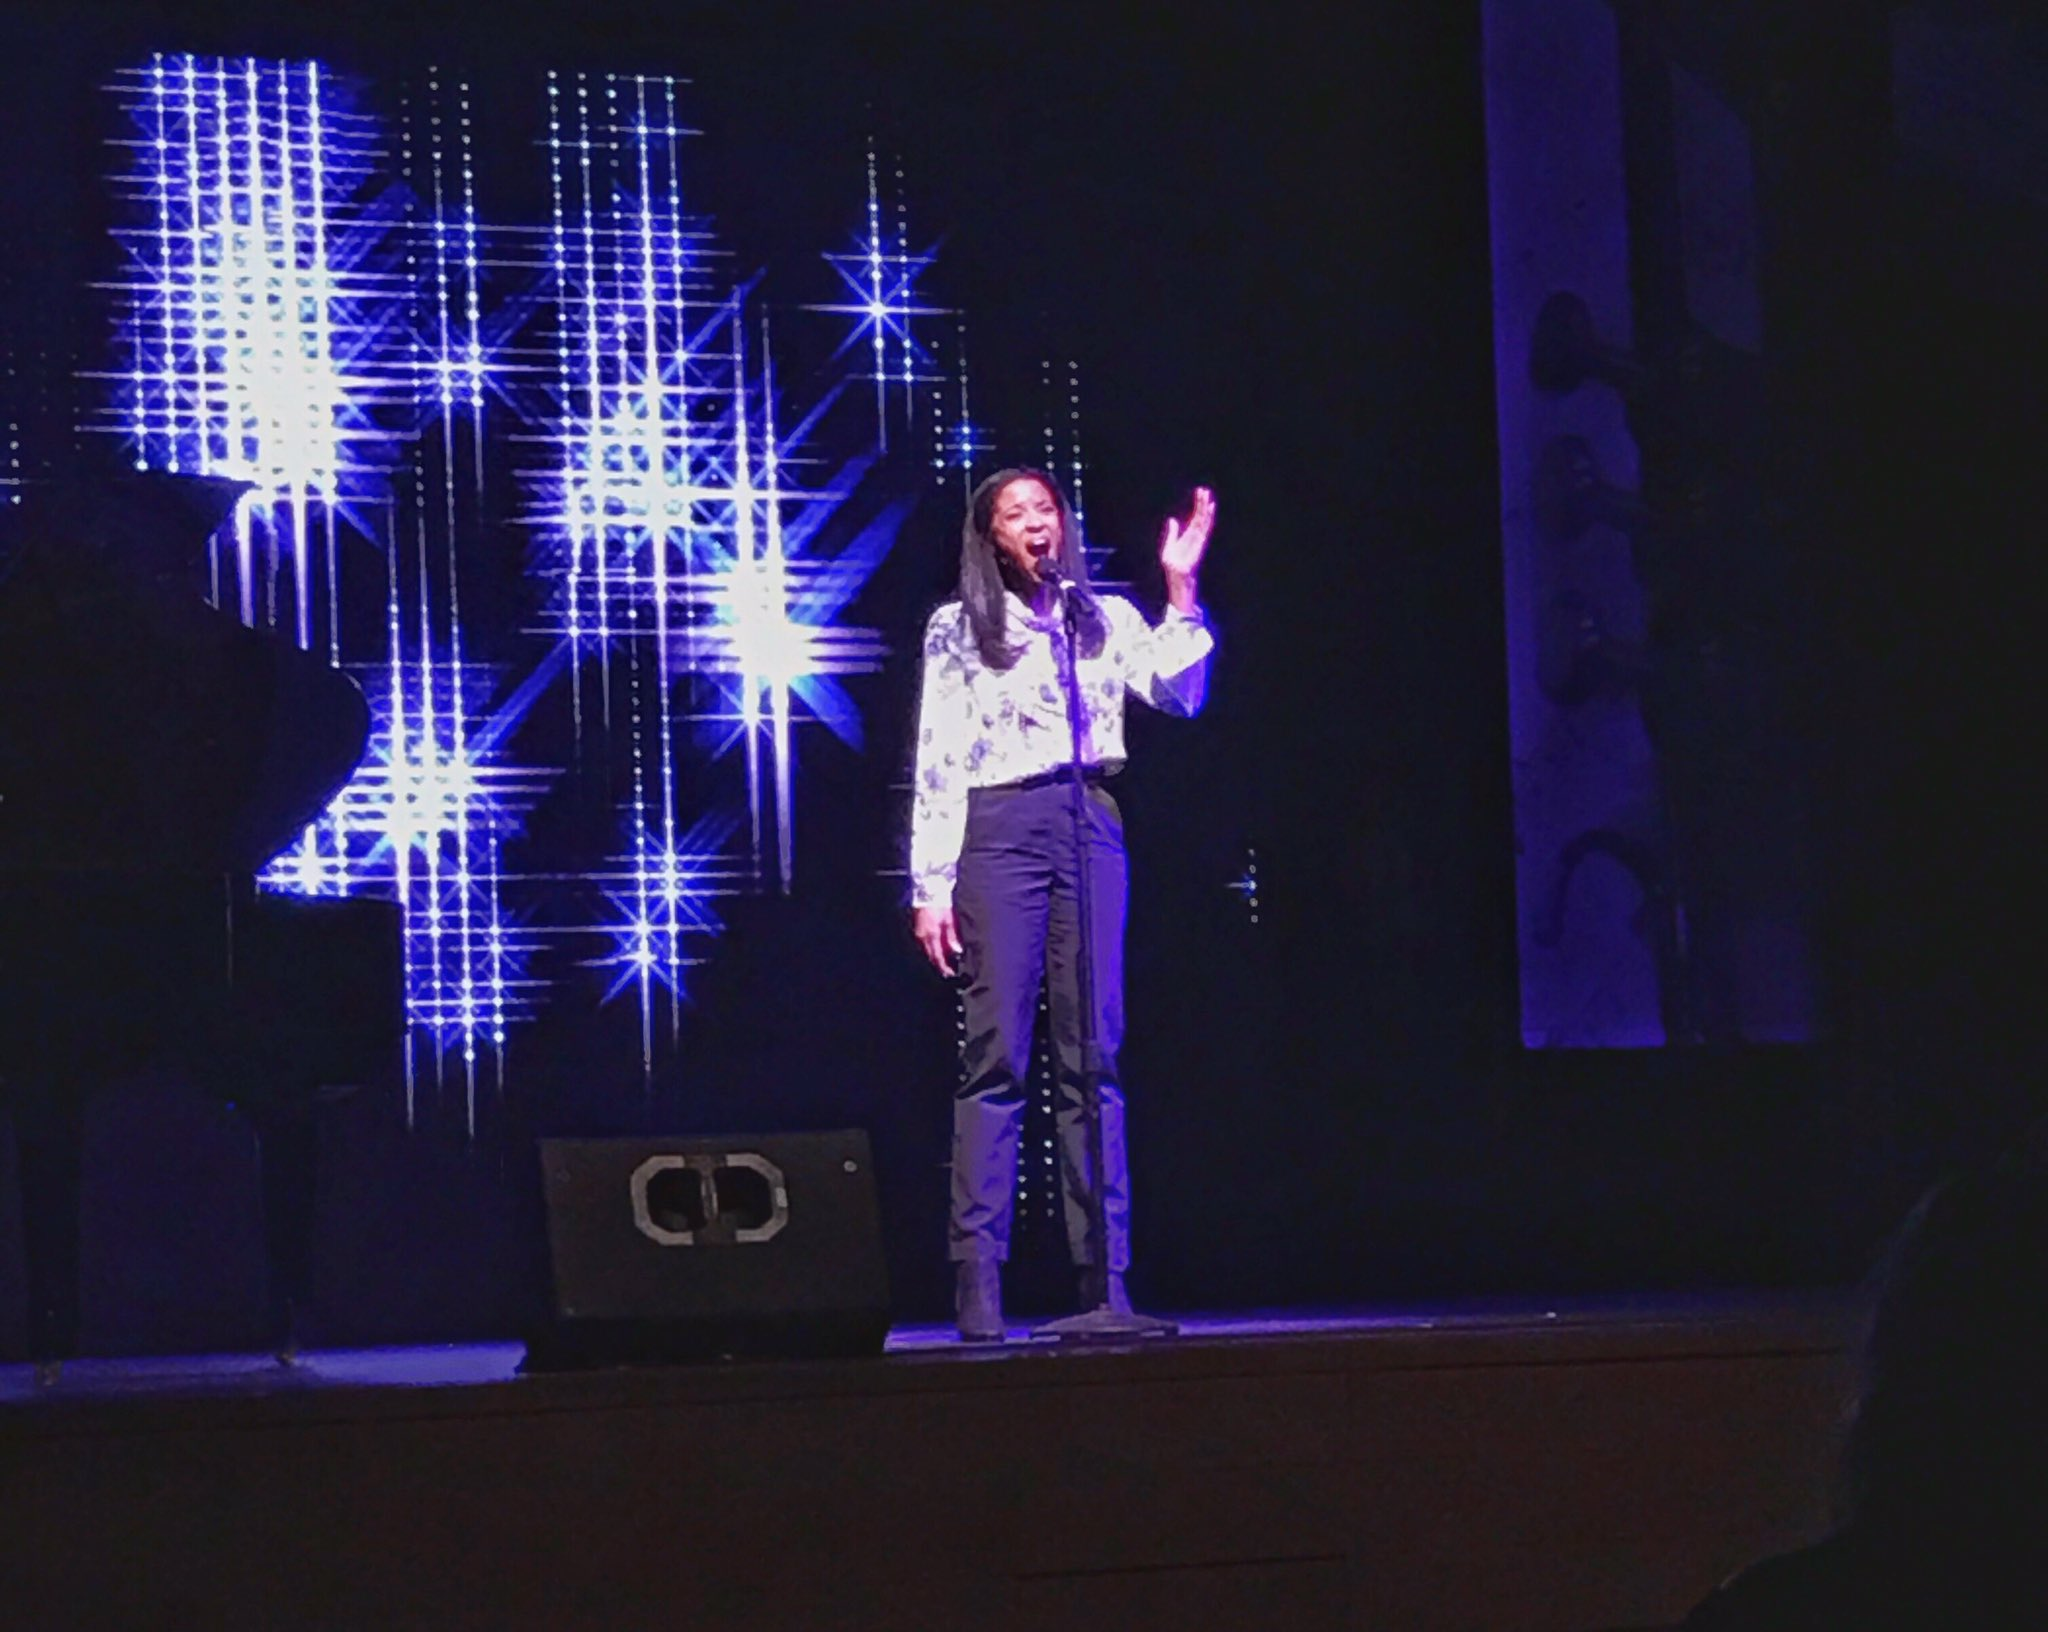 @reneeelisegolds thank you for speaking & performing today at northeastern! https://t.co/wXb2JNsJBC